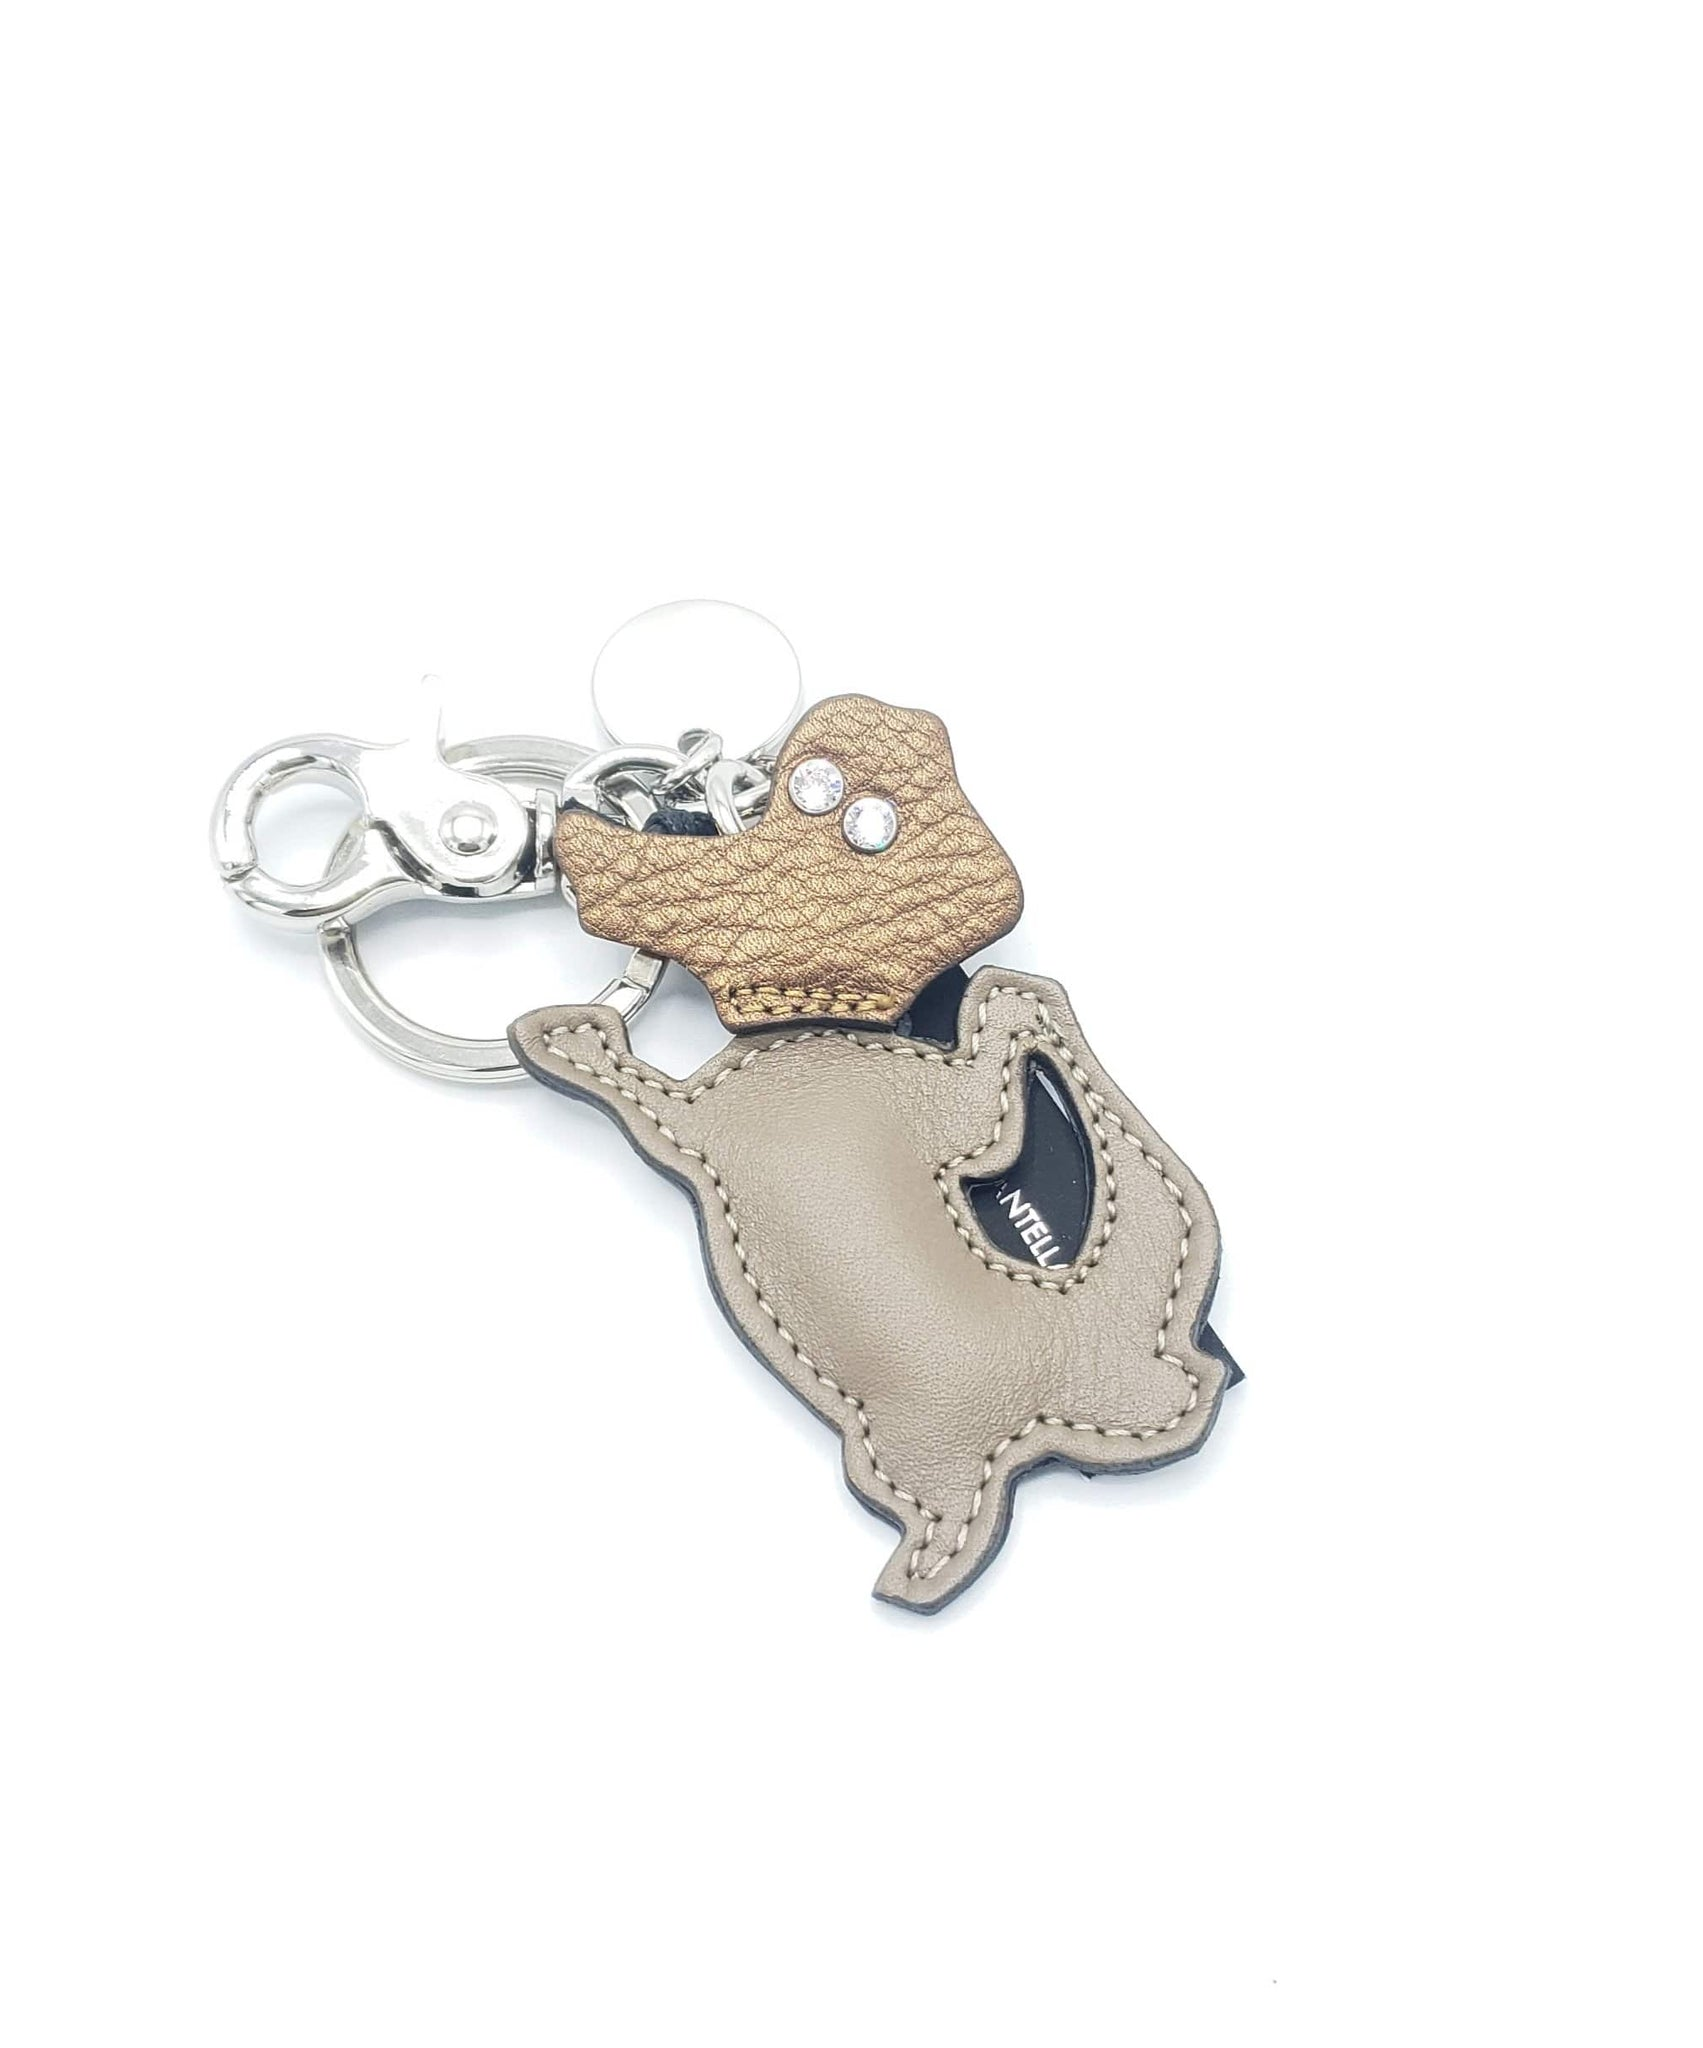 RM3096 Key Fob Crocodile - Selleria Veneta